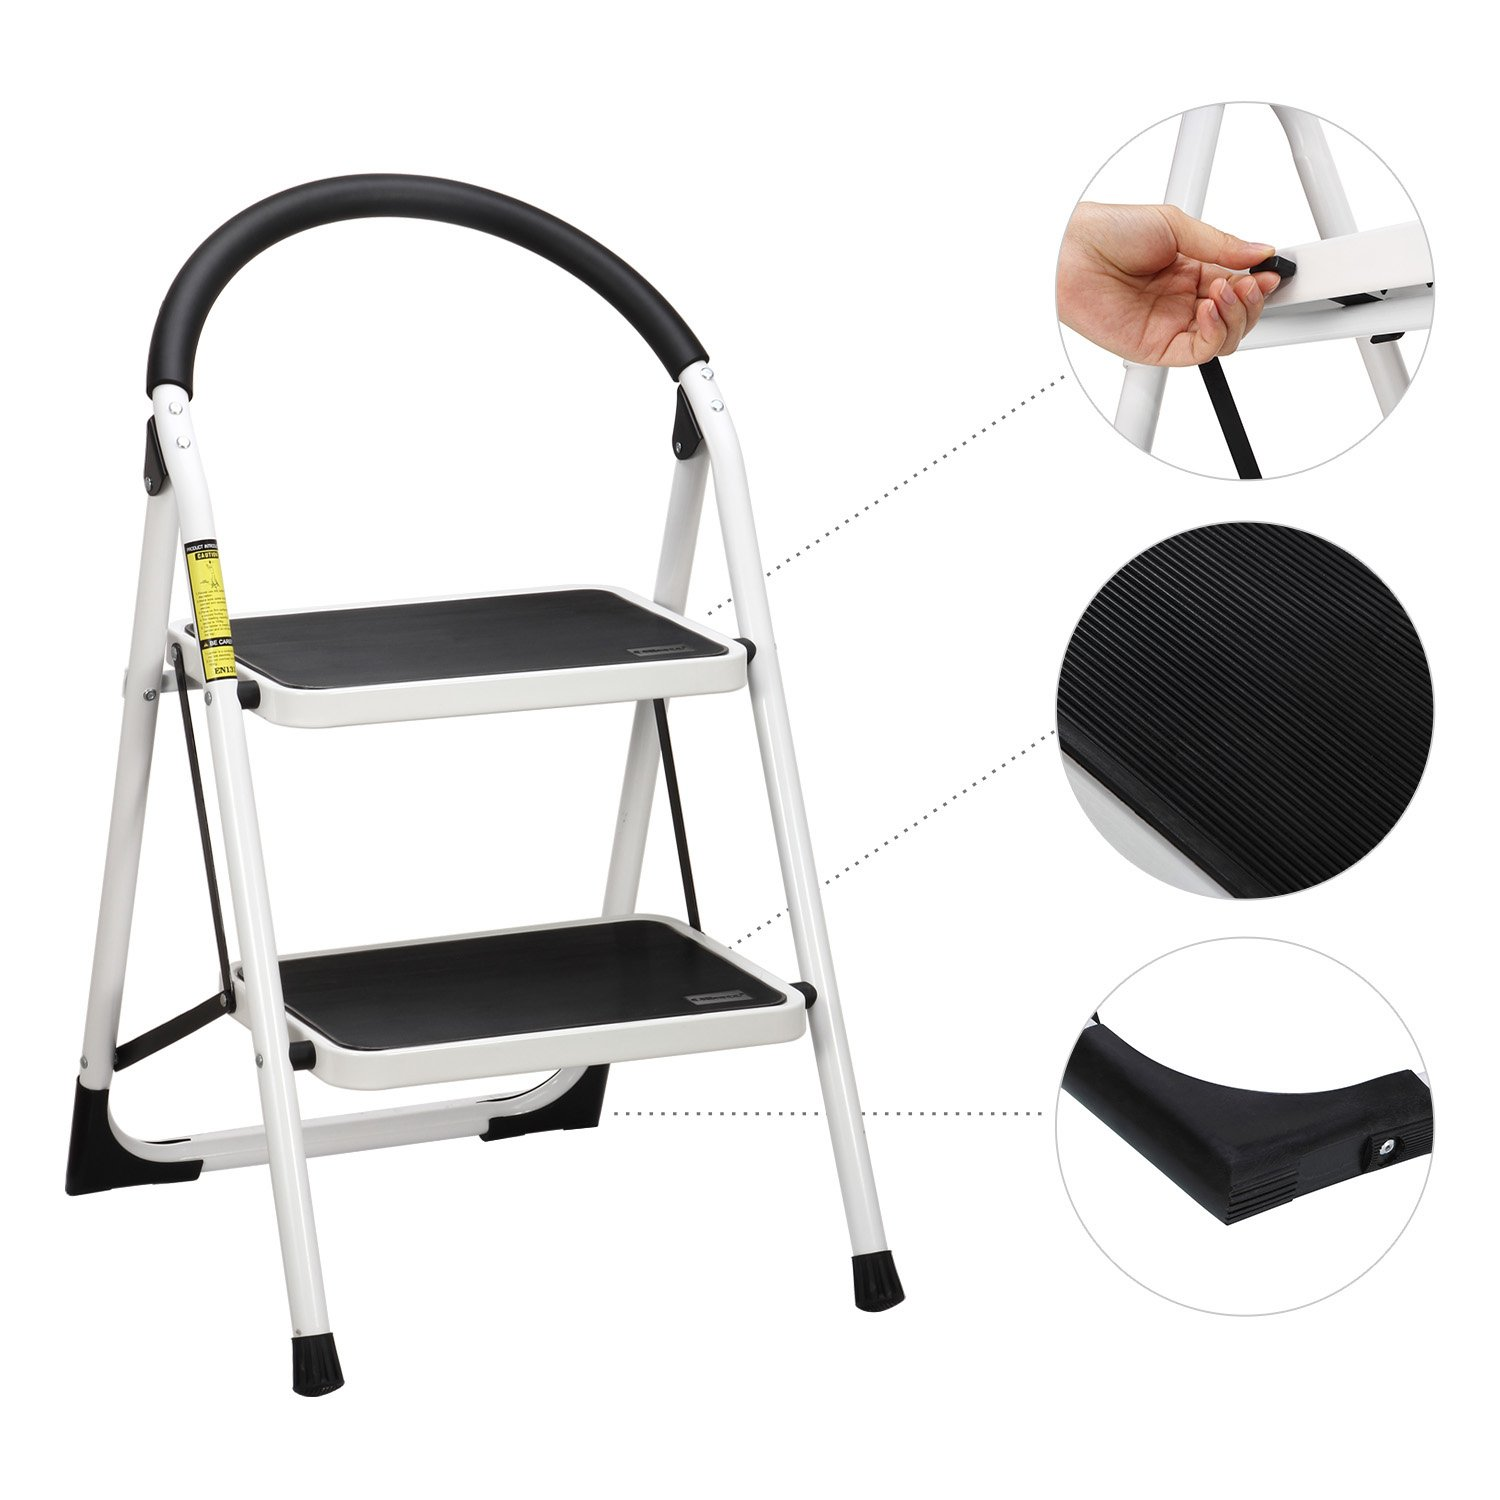 Ollieroo Step Stool EN131 Steel Folding 2 Step Ladder with Comfy Grip Handle Anti-slip Step Mon-marring Feet 330-pound Capacity White by Ollieroo (Image #4)